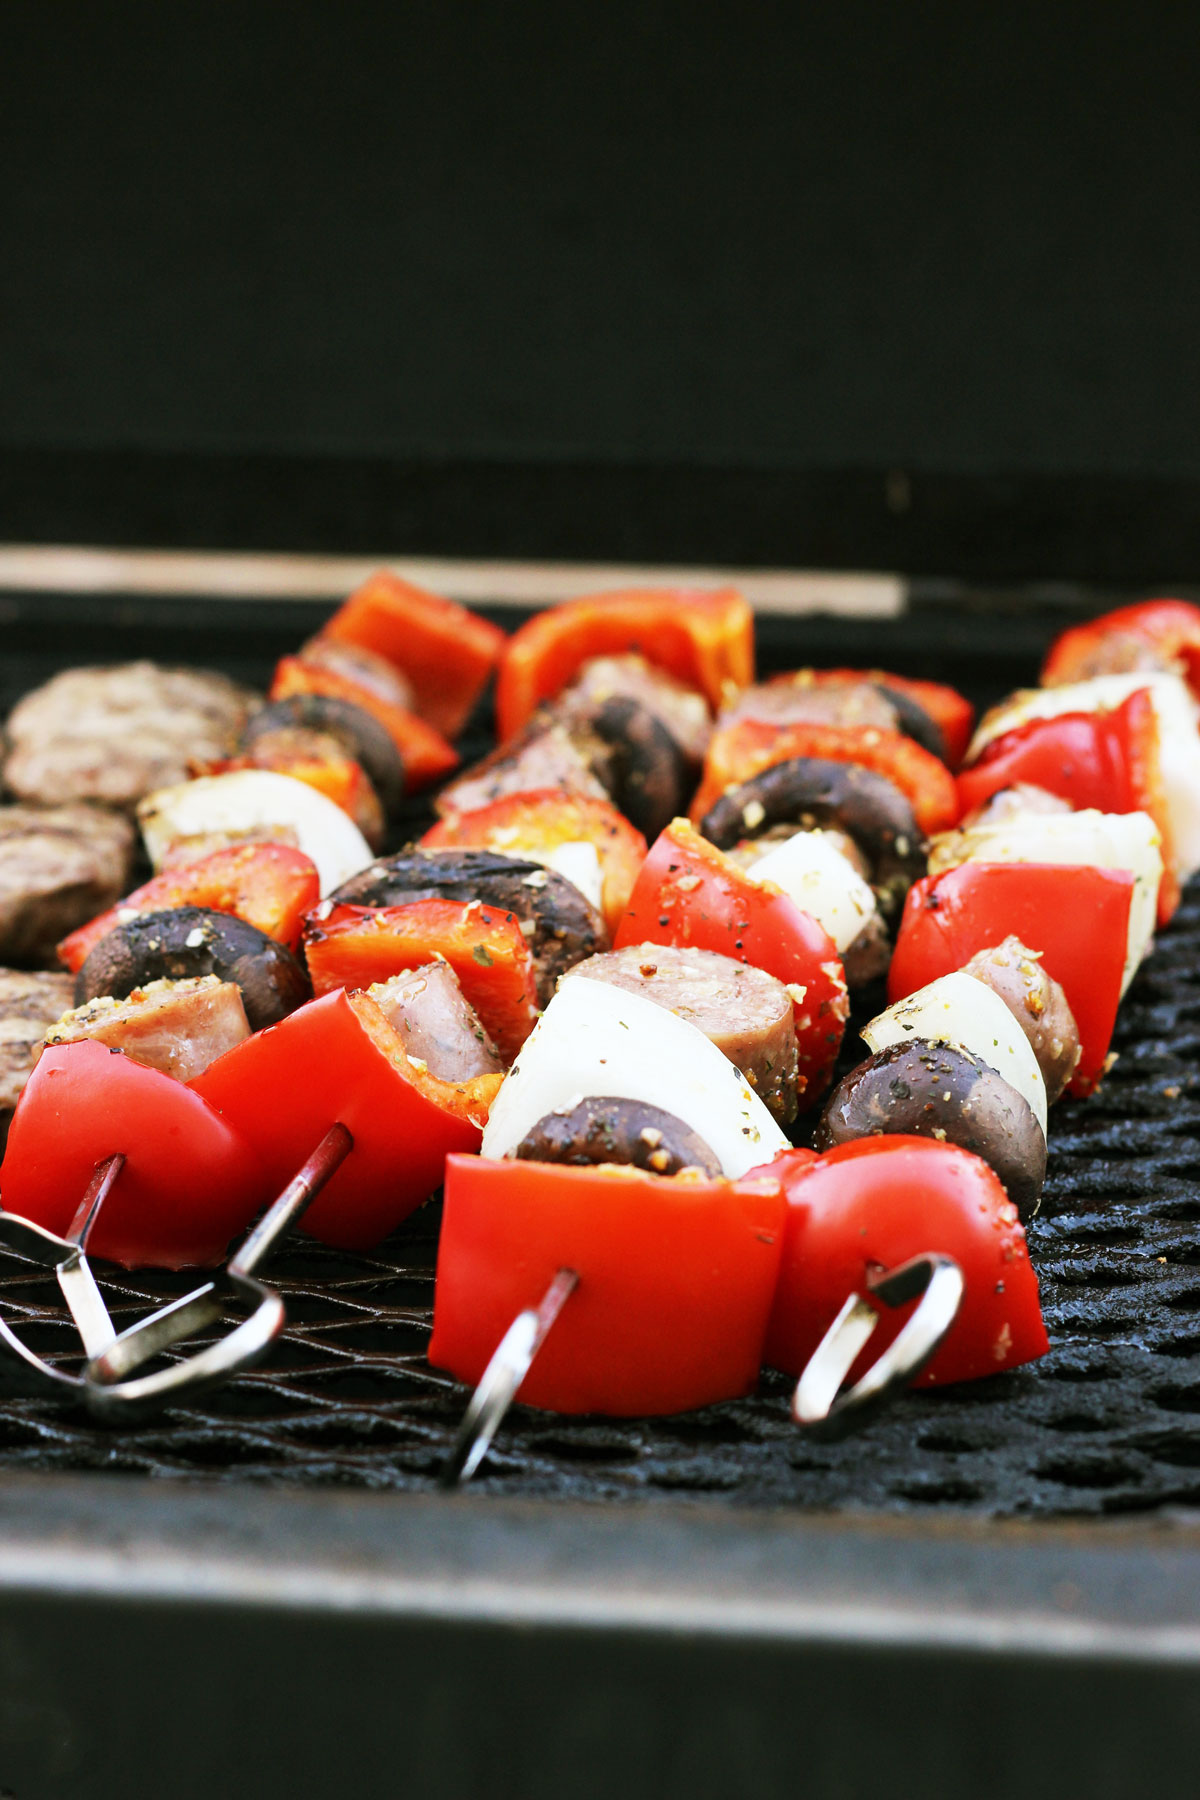 sausage, peppers, and onions on metal skewers on the grill.